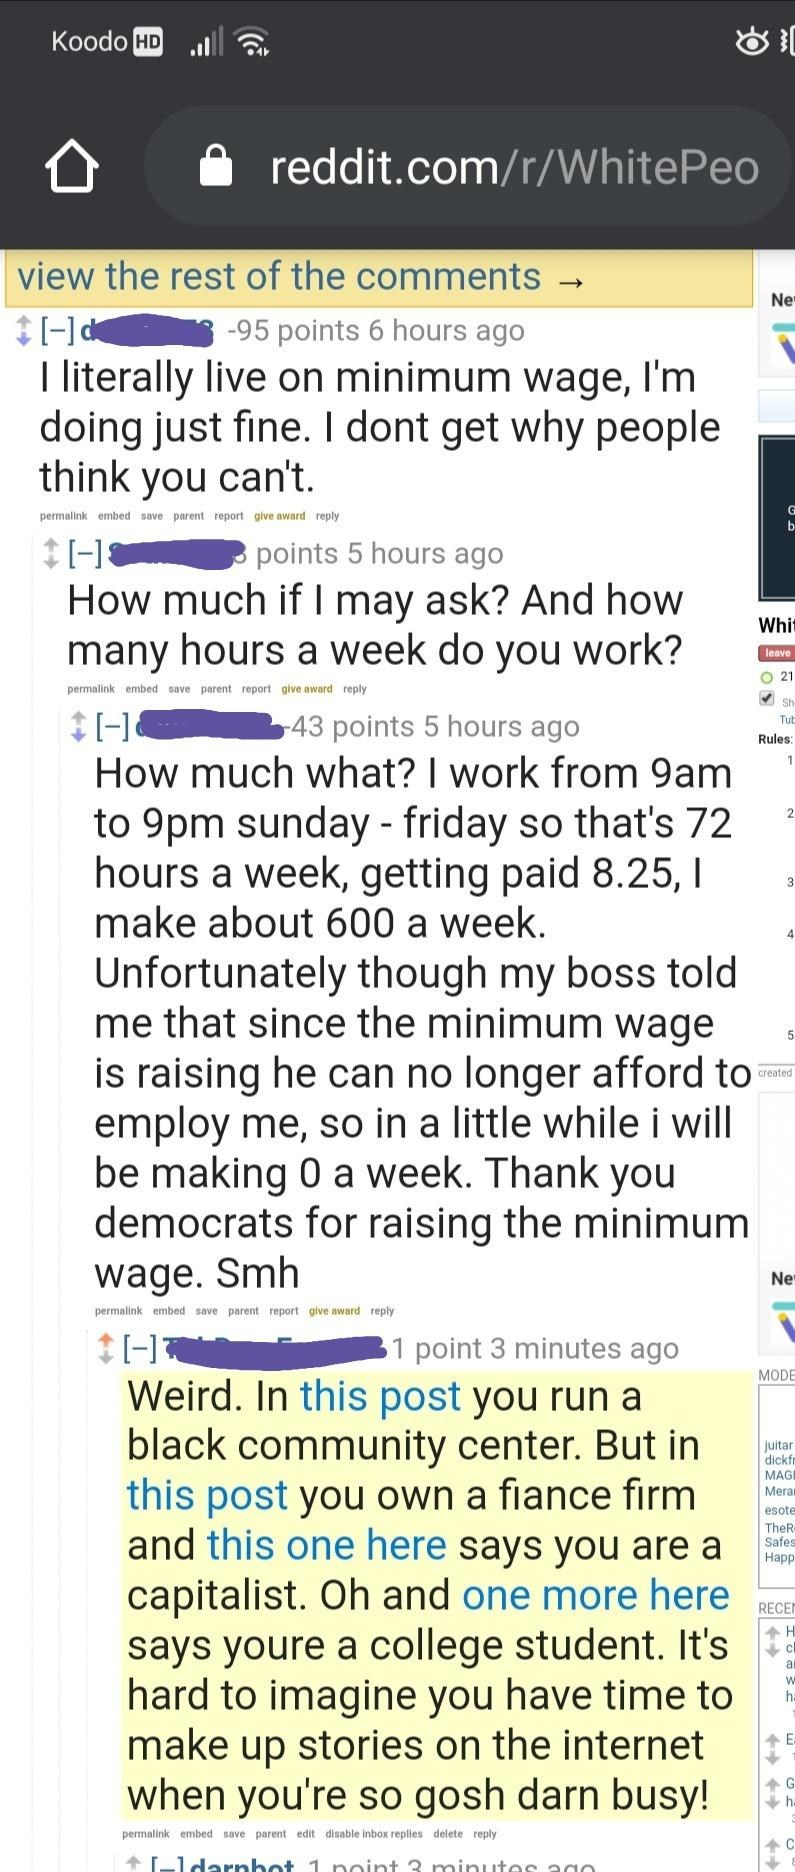 Text - Кoodo HD reddit.com/r/WhitePeo view the rest of the comments → Ne -95 points 6 hours ago I literally live on minimum wage, I'm doing just fine. I dont get why people think you can't. G permalink embed save parent report give award reply points 5 hours ago How much if I may ask? And how many hours a week do you work? Whit leave O 21 permalink embed save parent report give award reply V Sh 43 points 5 hours ago How much what? I work from 9am to 9pm sunday - friday so that's 72 hours a week,